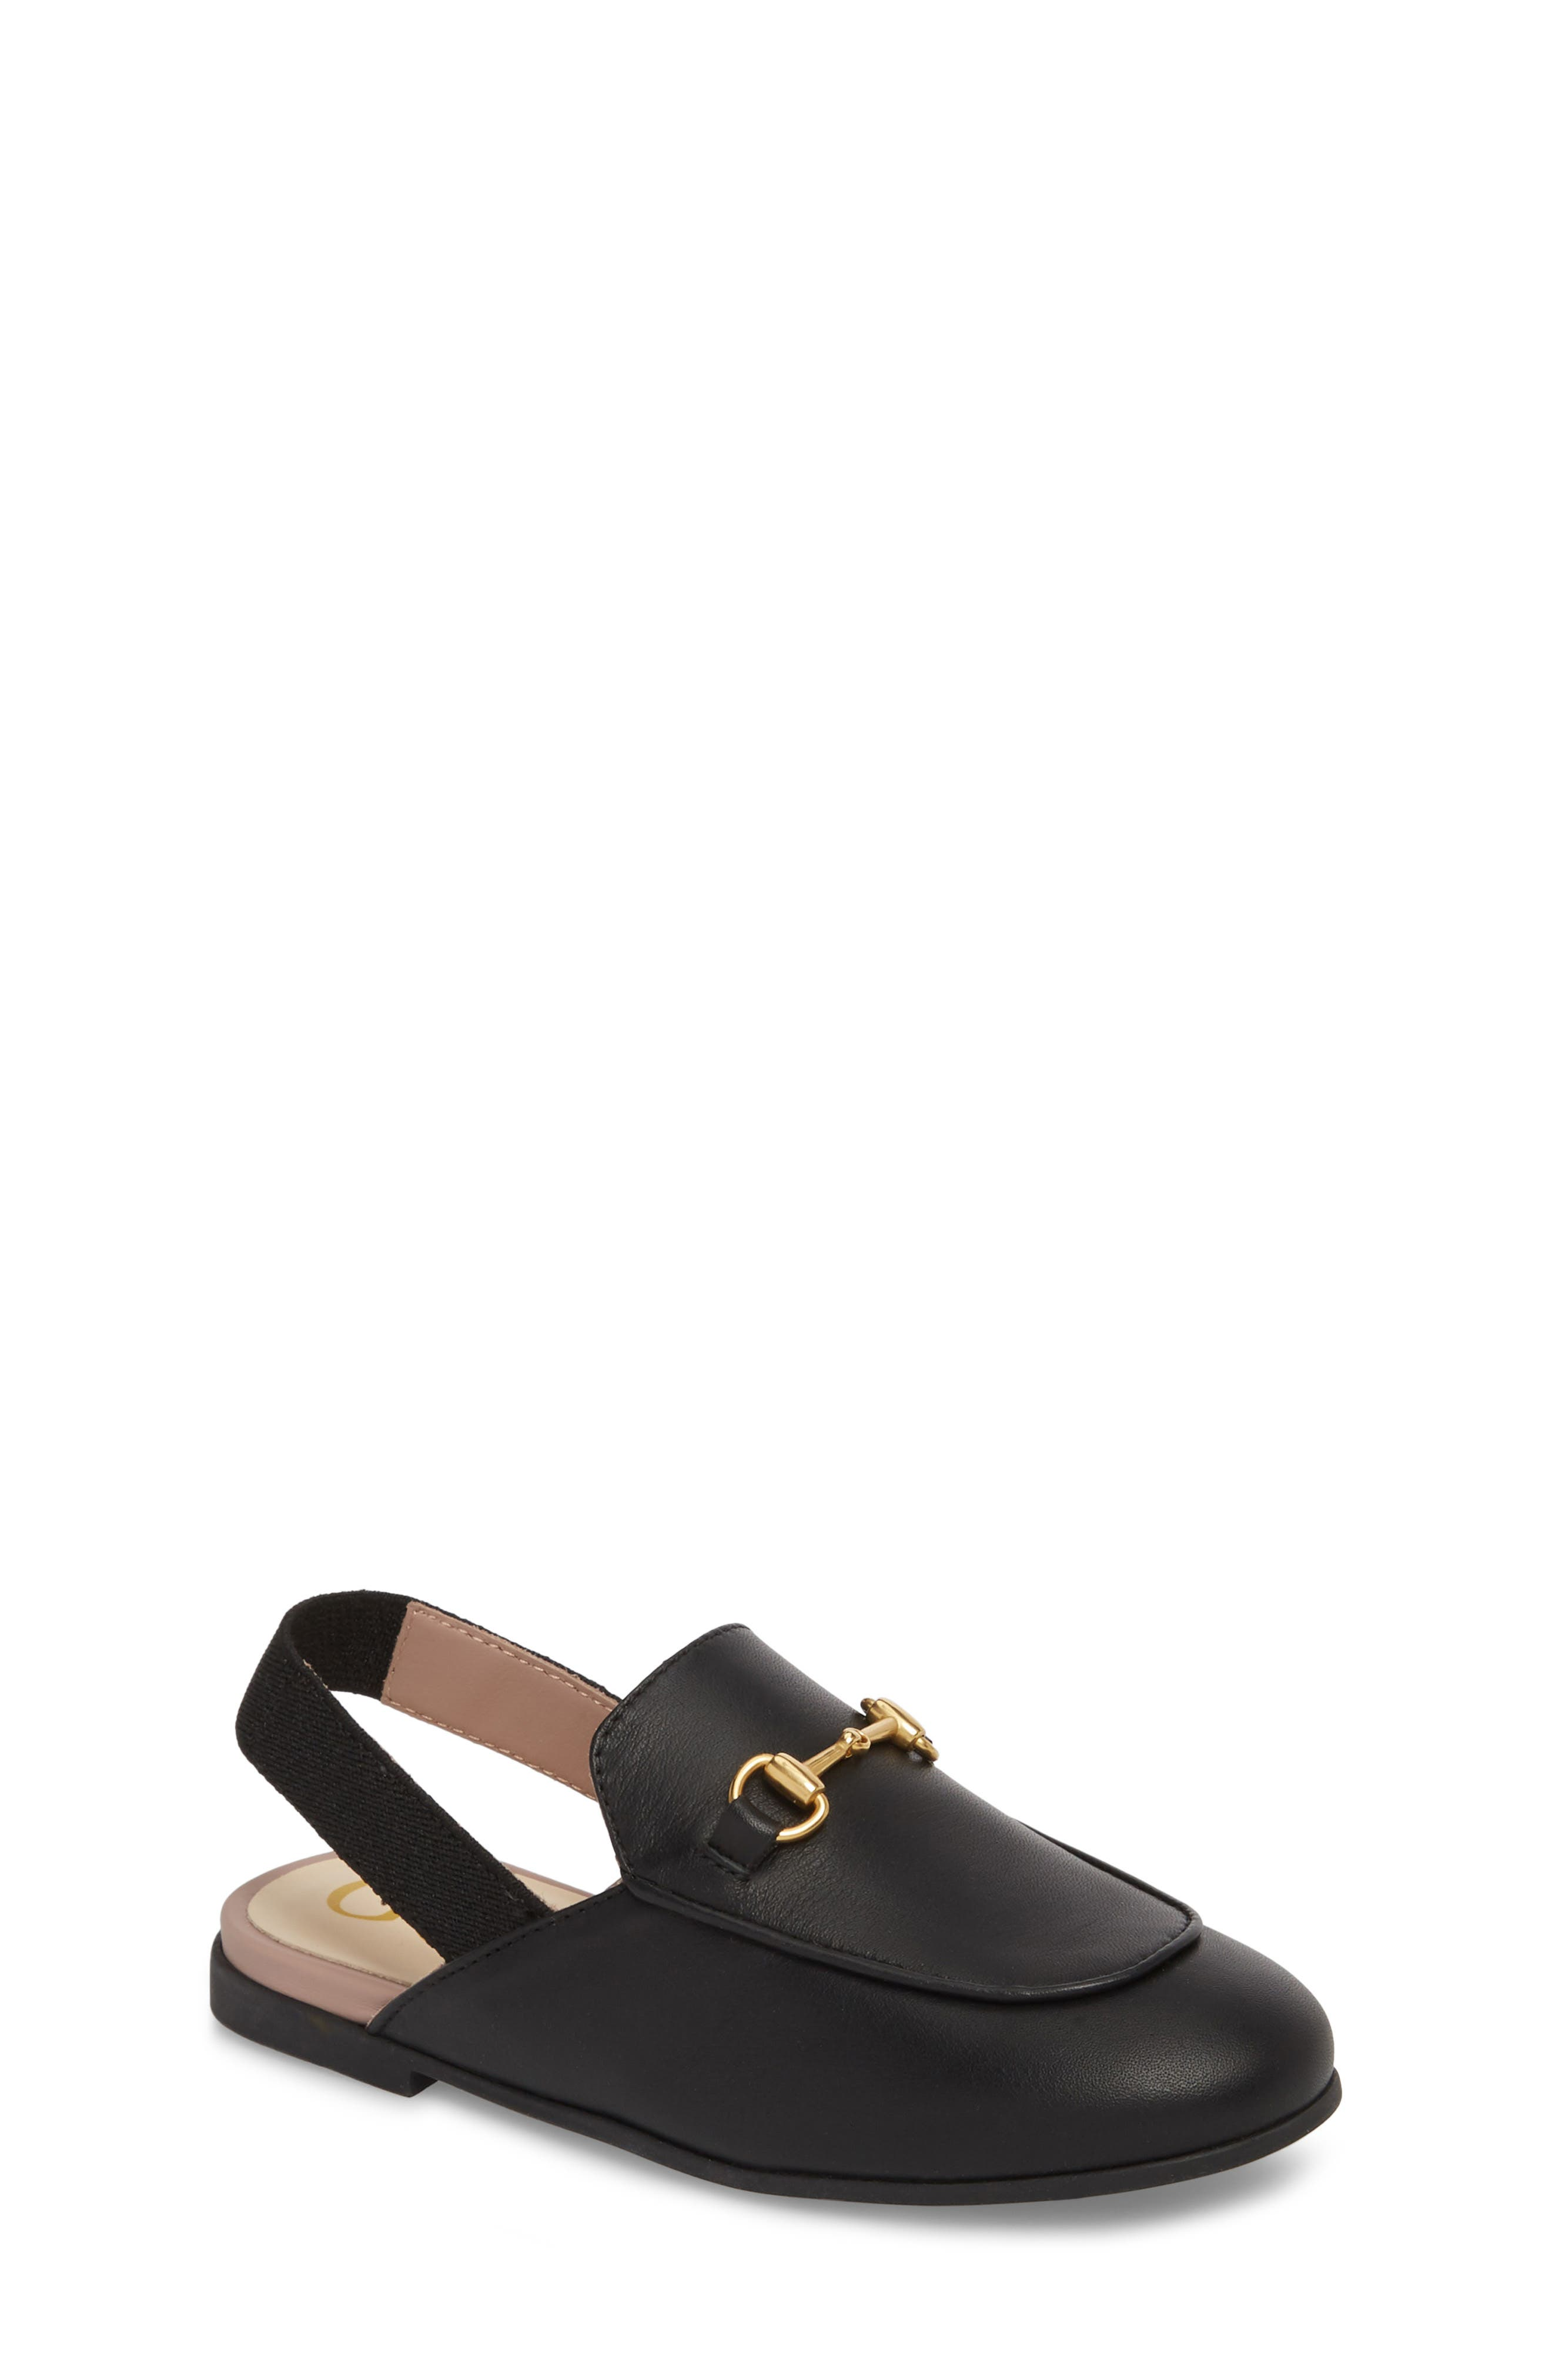 GUCCI, Princetown Loafer Mule, Main thumbnail 1, color, BLACK/ BLACK